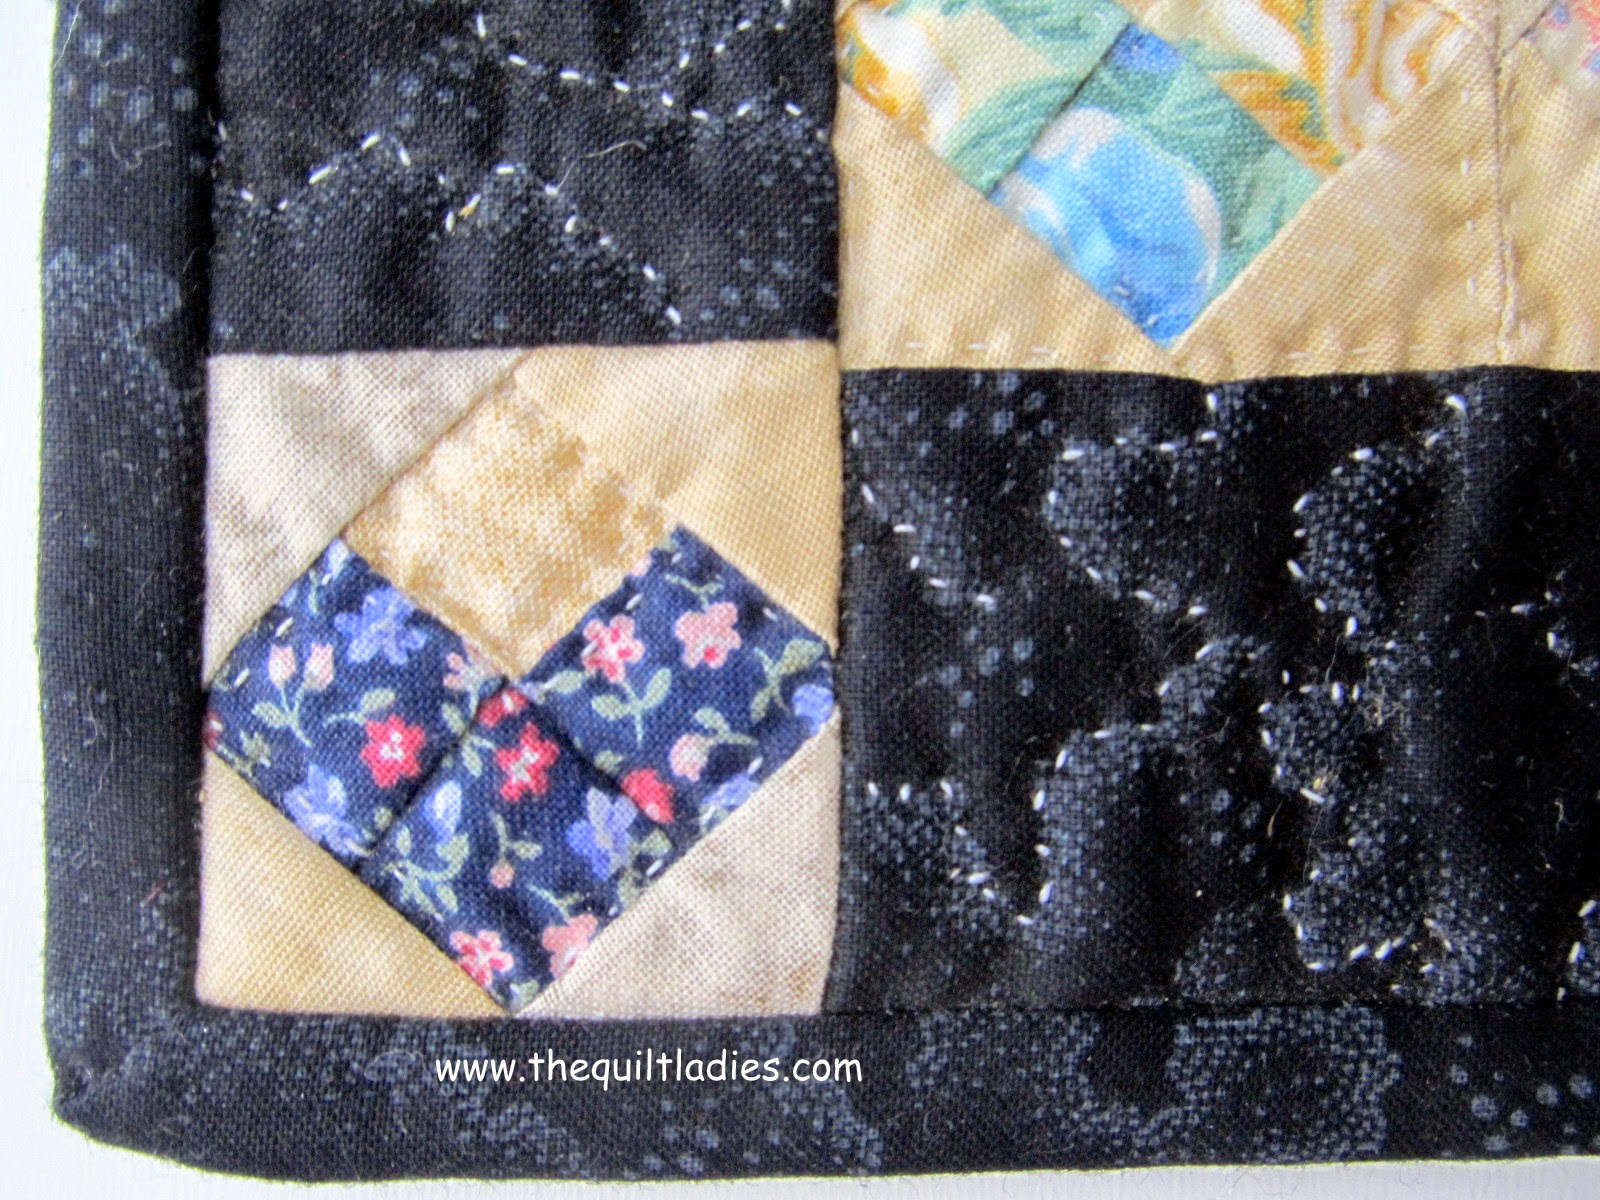 Little Quilt by The Quilt Ladies